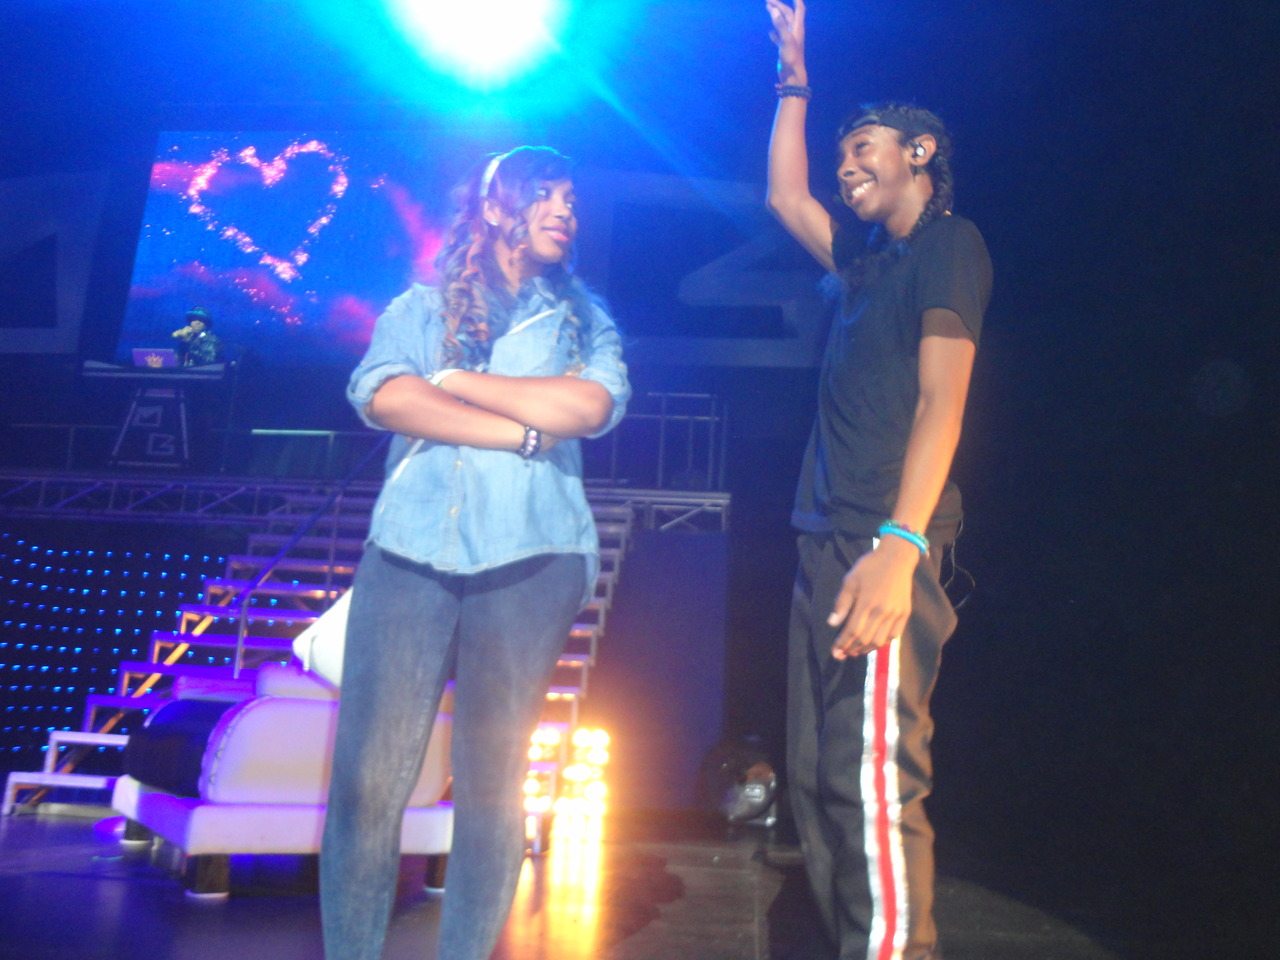 Ray Ray and Star on stage - Mindless Behavior Photo ... Zonnique And Ray Ray Kissing